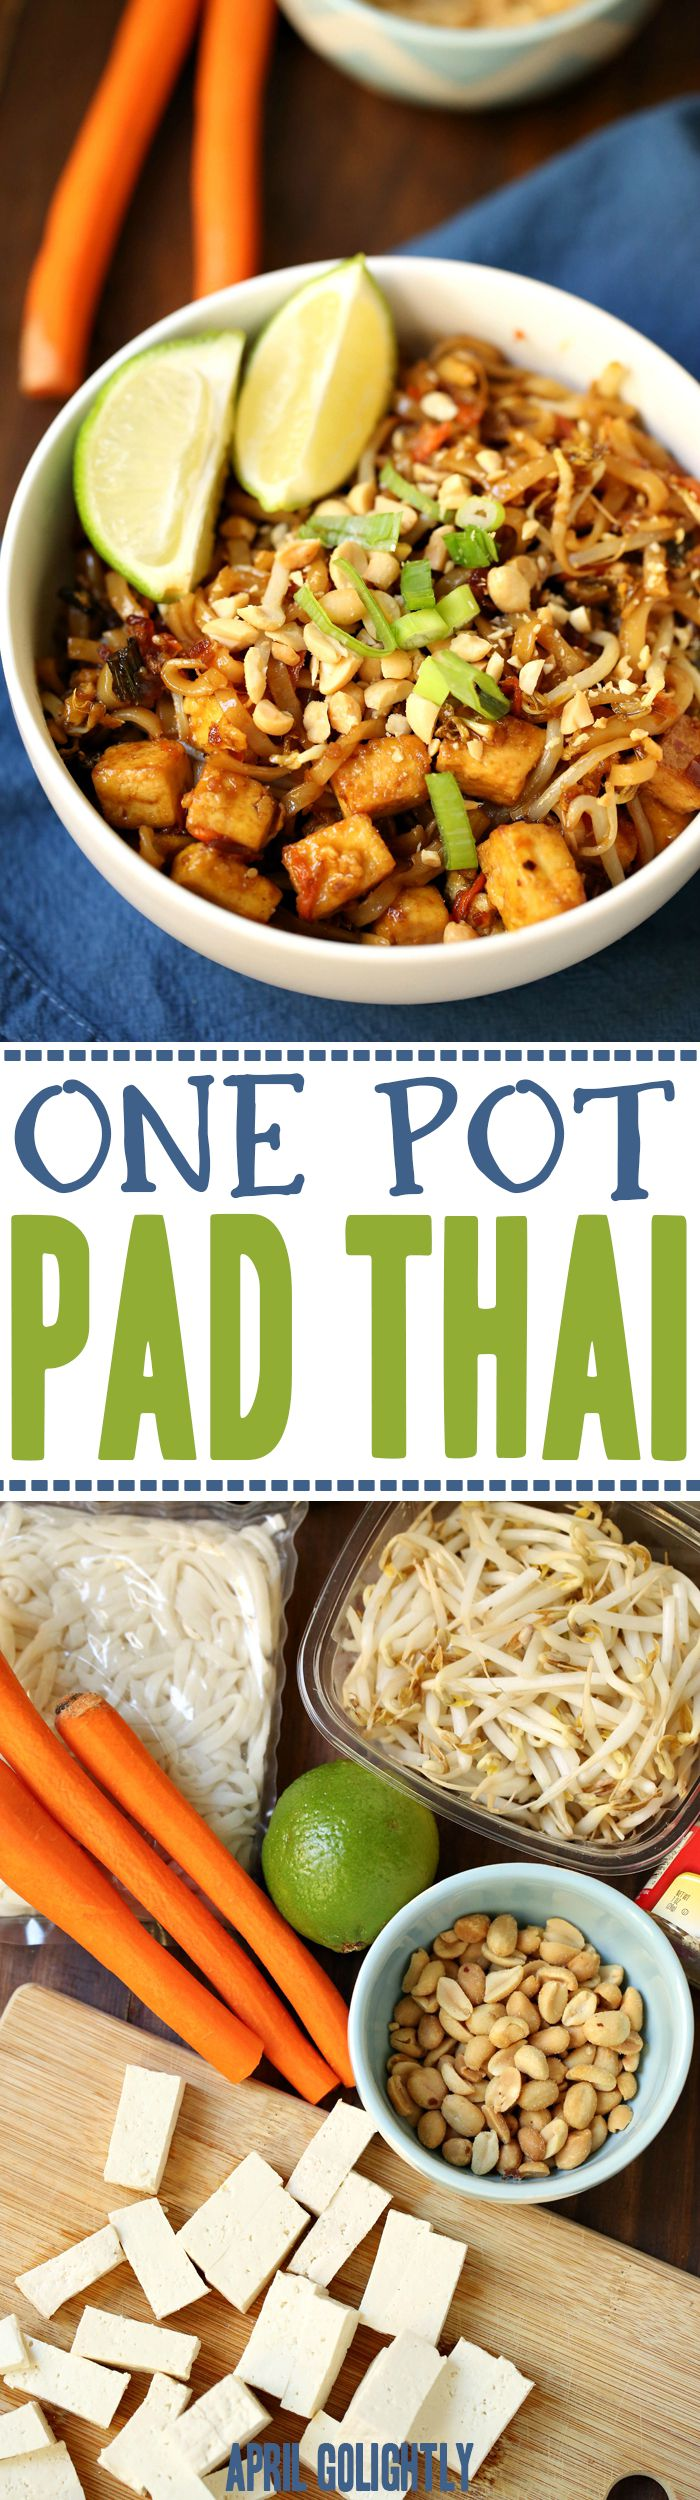 Easy One Pot Pad Thai Recipe To Make Quickly For Dinner With Less Dishes And Healthy